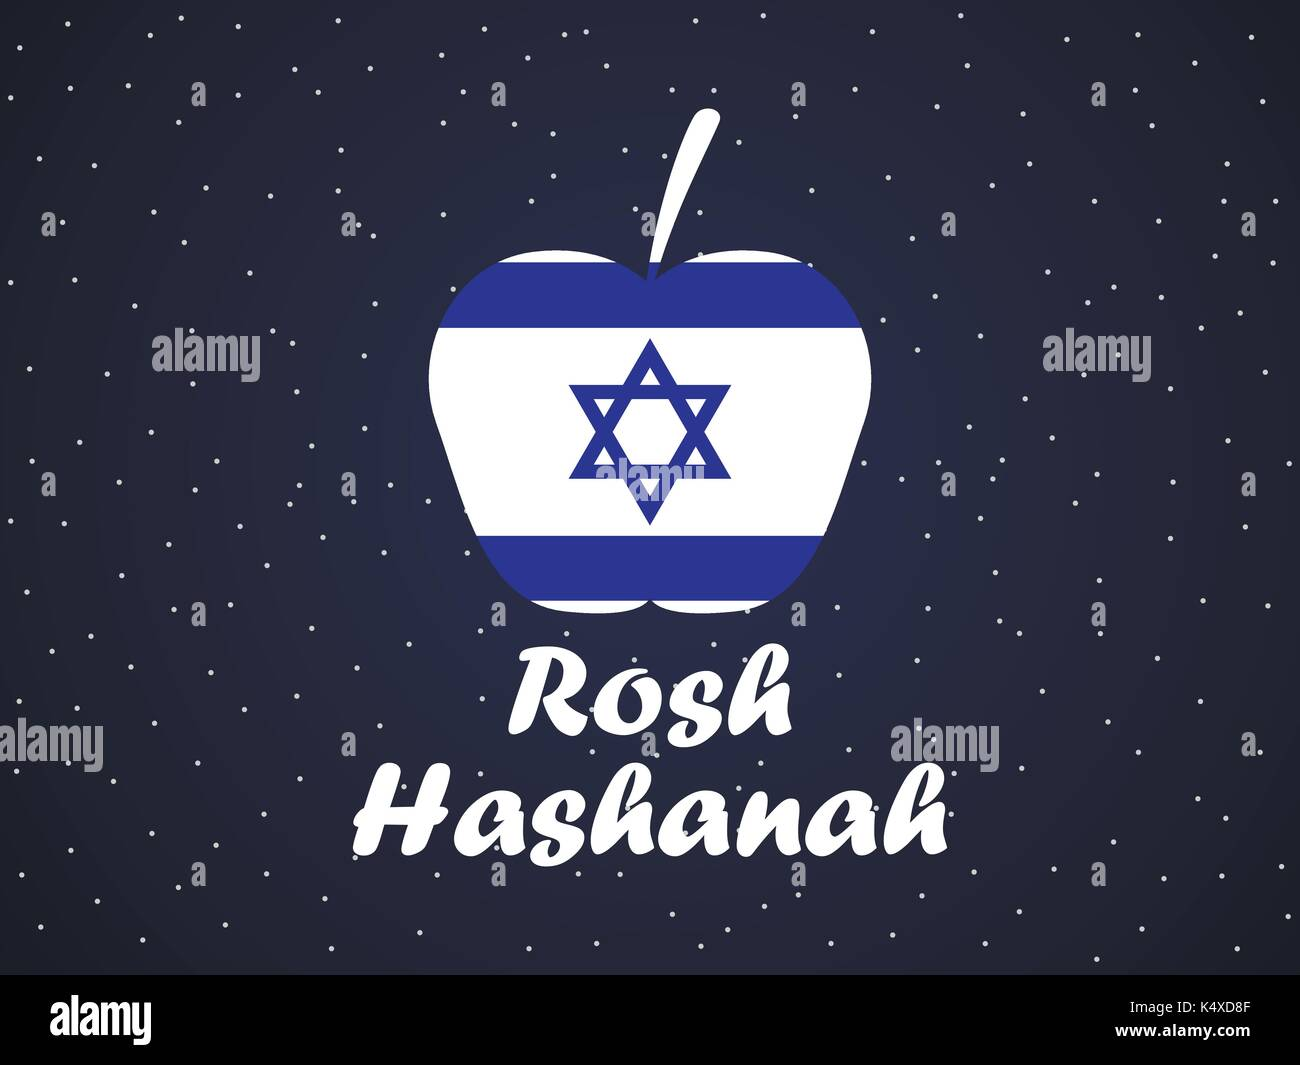 Rosh hashanah greeting card design jewish new year shana tova rosh hashanah greeting card design jewish new year shana tova israel flag and apple vector illustration kristyandbryce Choice Image